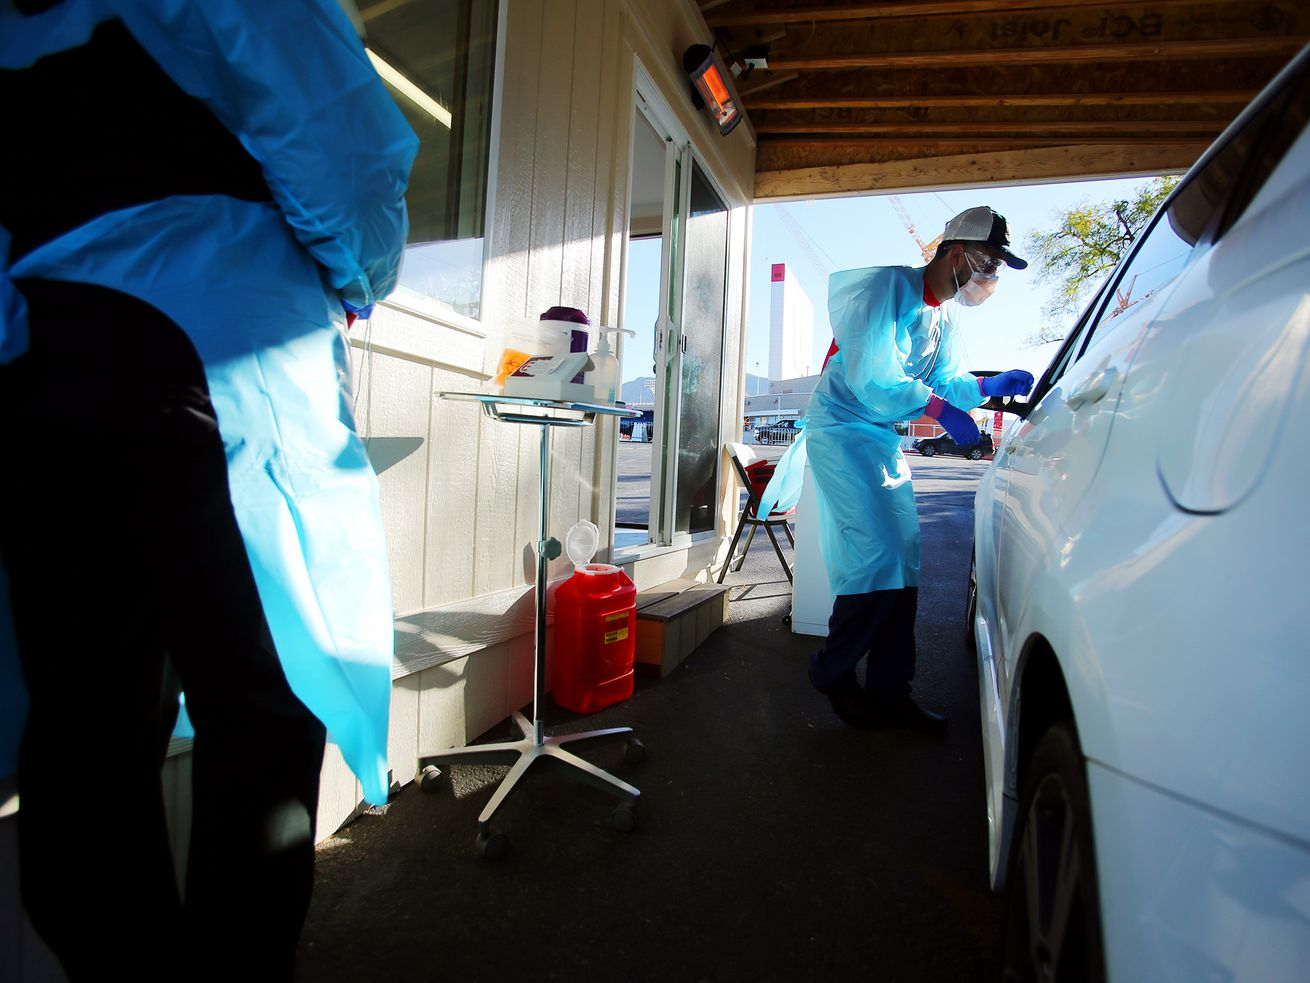 Nurses Polly Crookston and Daniel Salas Jimenez work at a new COVID-19 testing site in the parking lot of Rice-Eccles Stadium in Salt Lake City on Monday, Oct. 12, 2020. The testing site is open Monday through Friday, 8 a.m. to 4 p.m., and Saturday and Sunday, 8 a.m. to noon. Appointments are required.